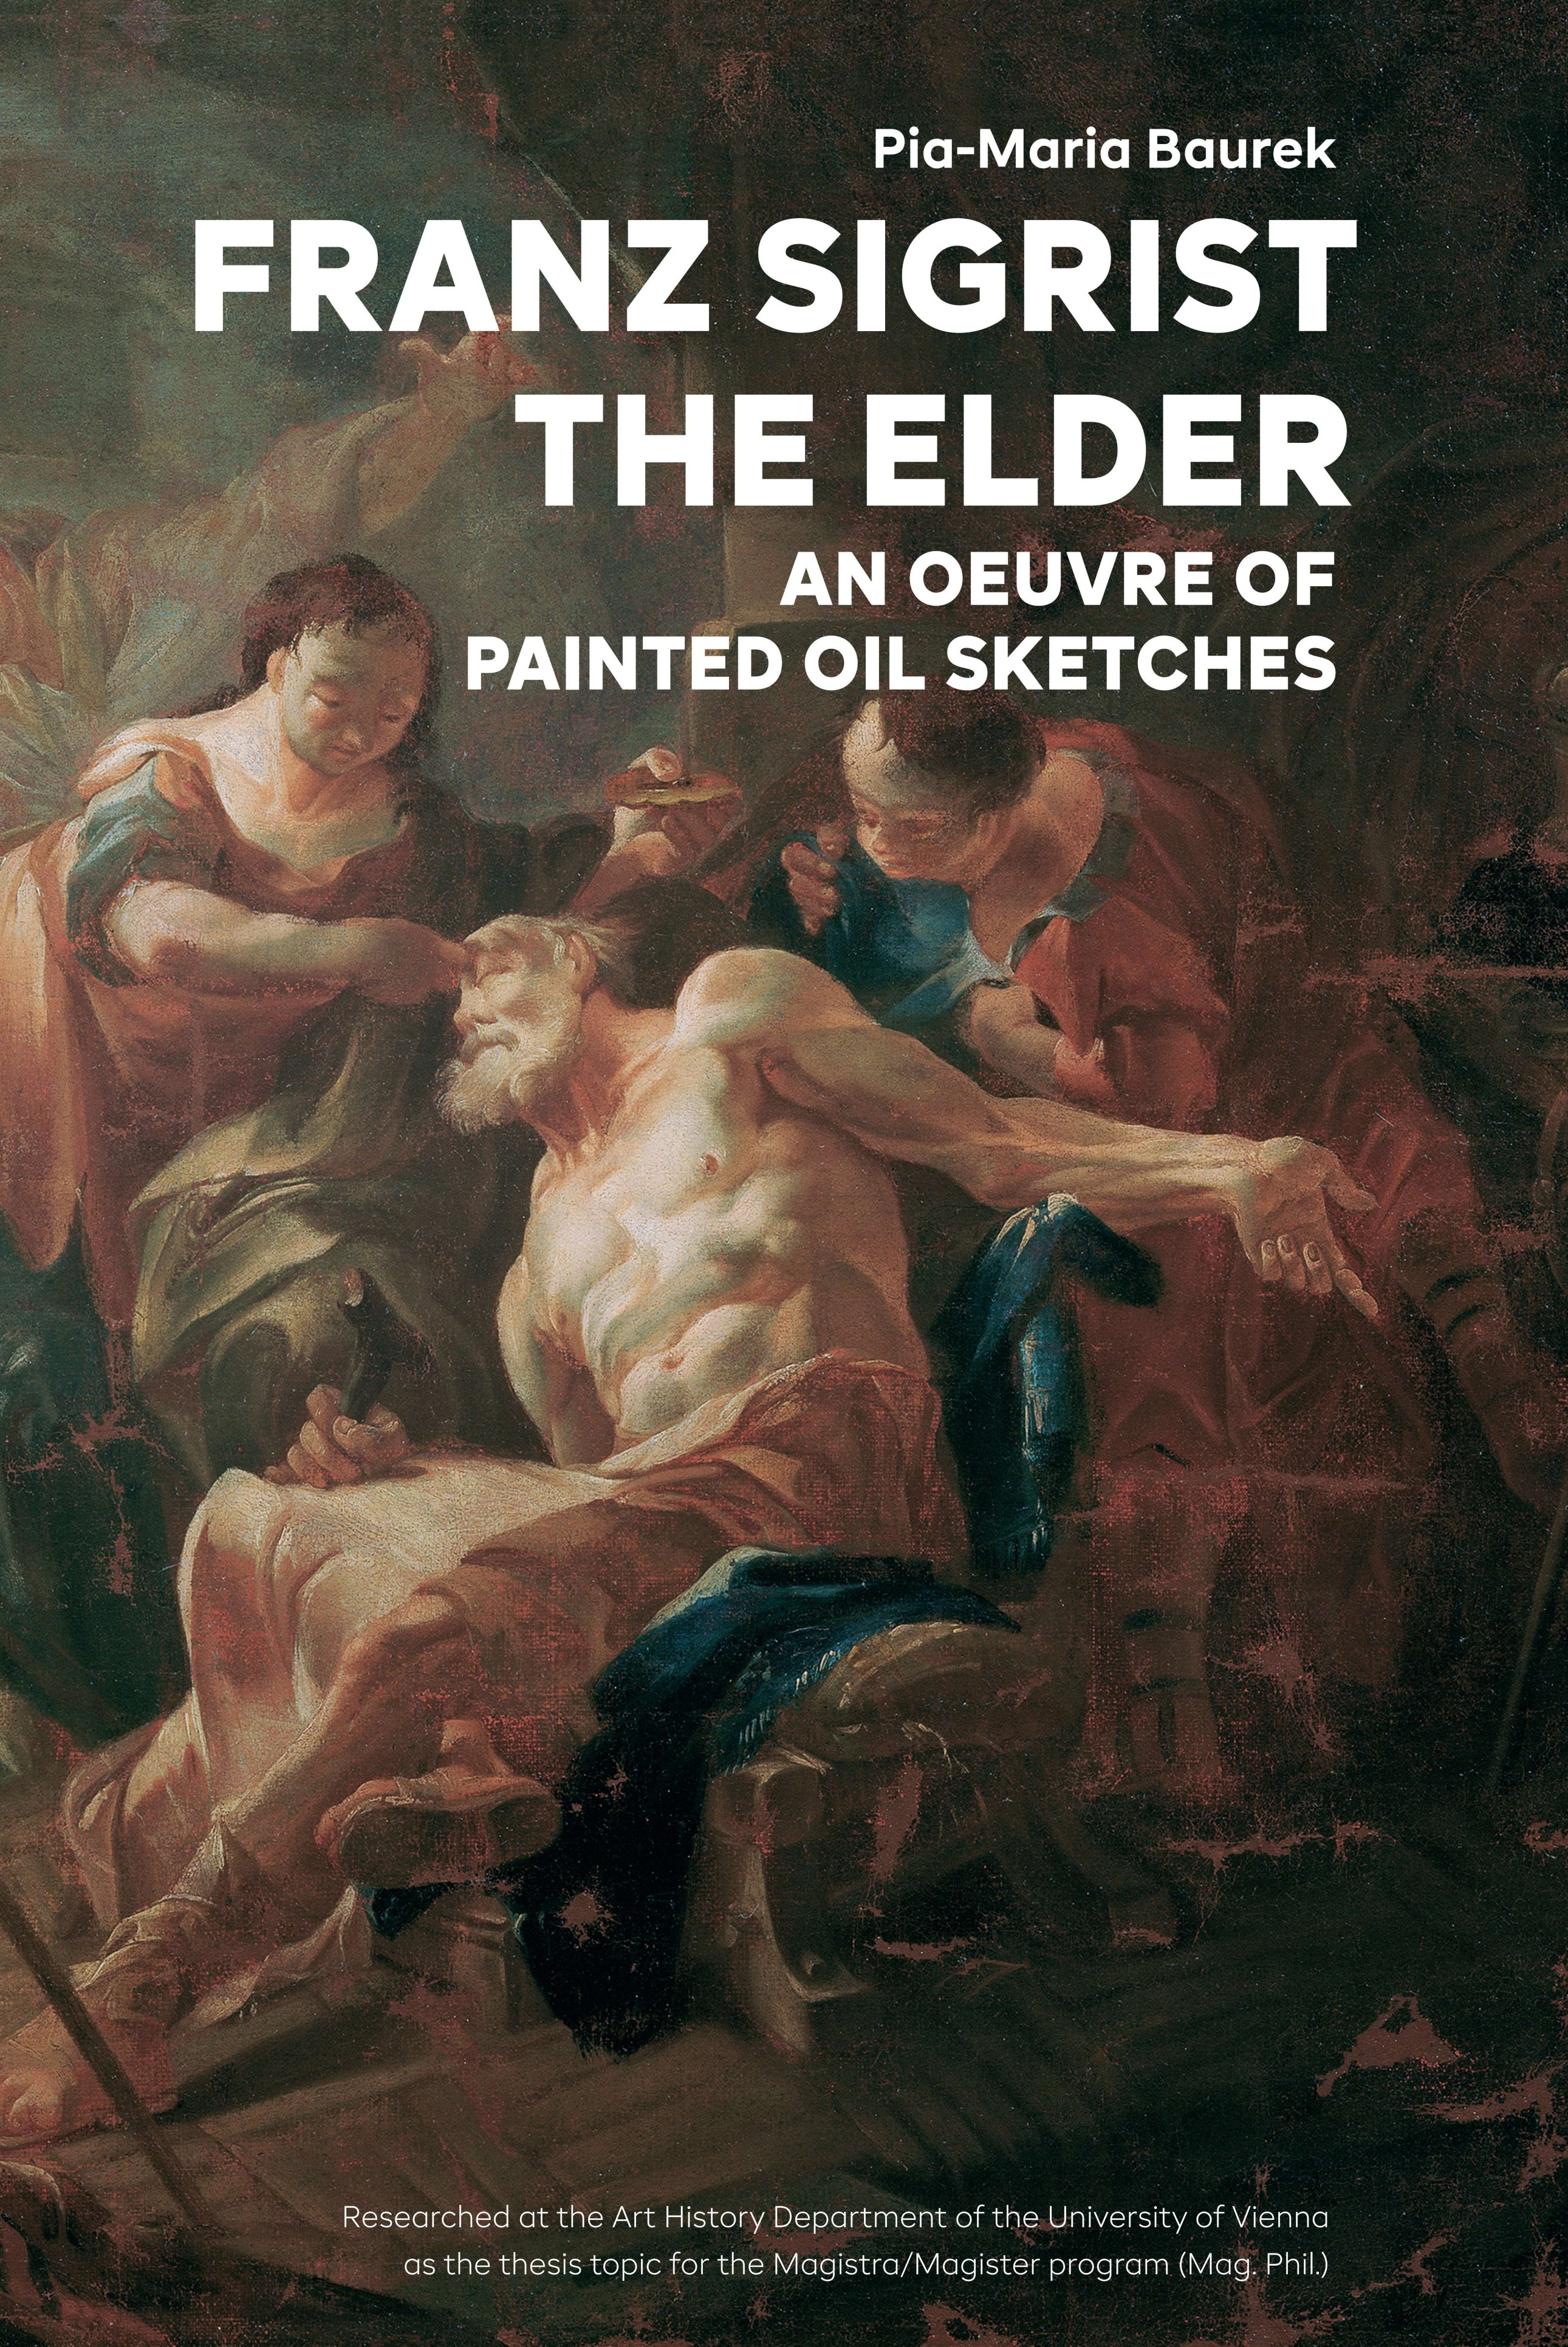 Franz Sigrist the Elder - An Oeuvre of Painted Oil Sketches